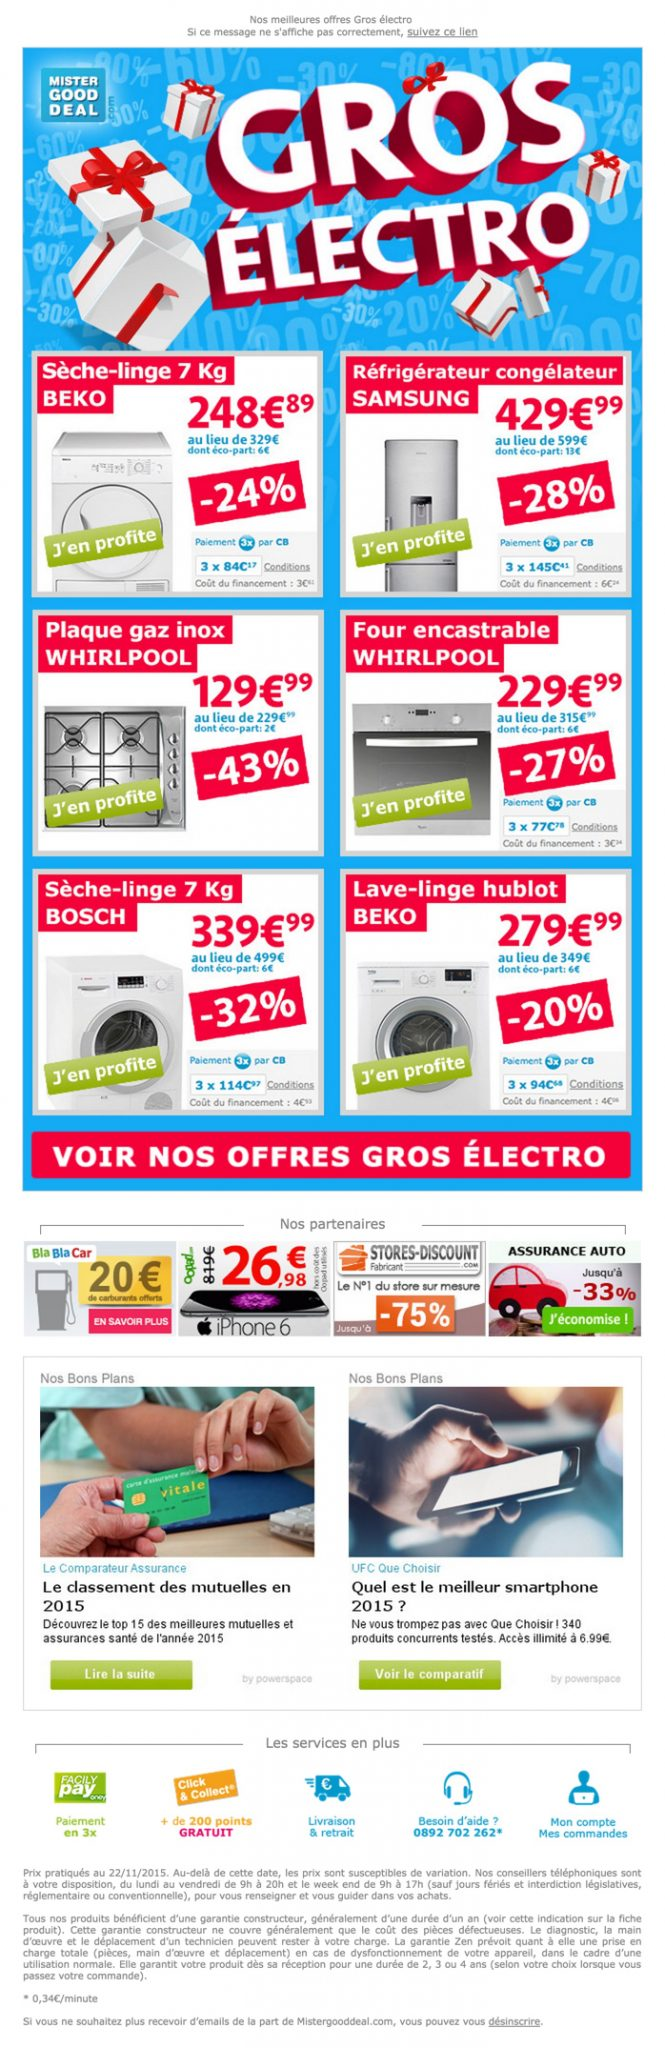 newsletter mister good deal du 21 novembre 2015